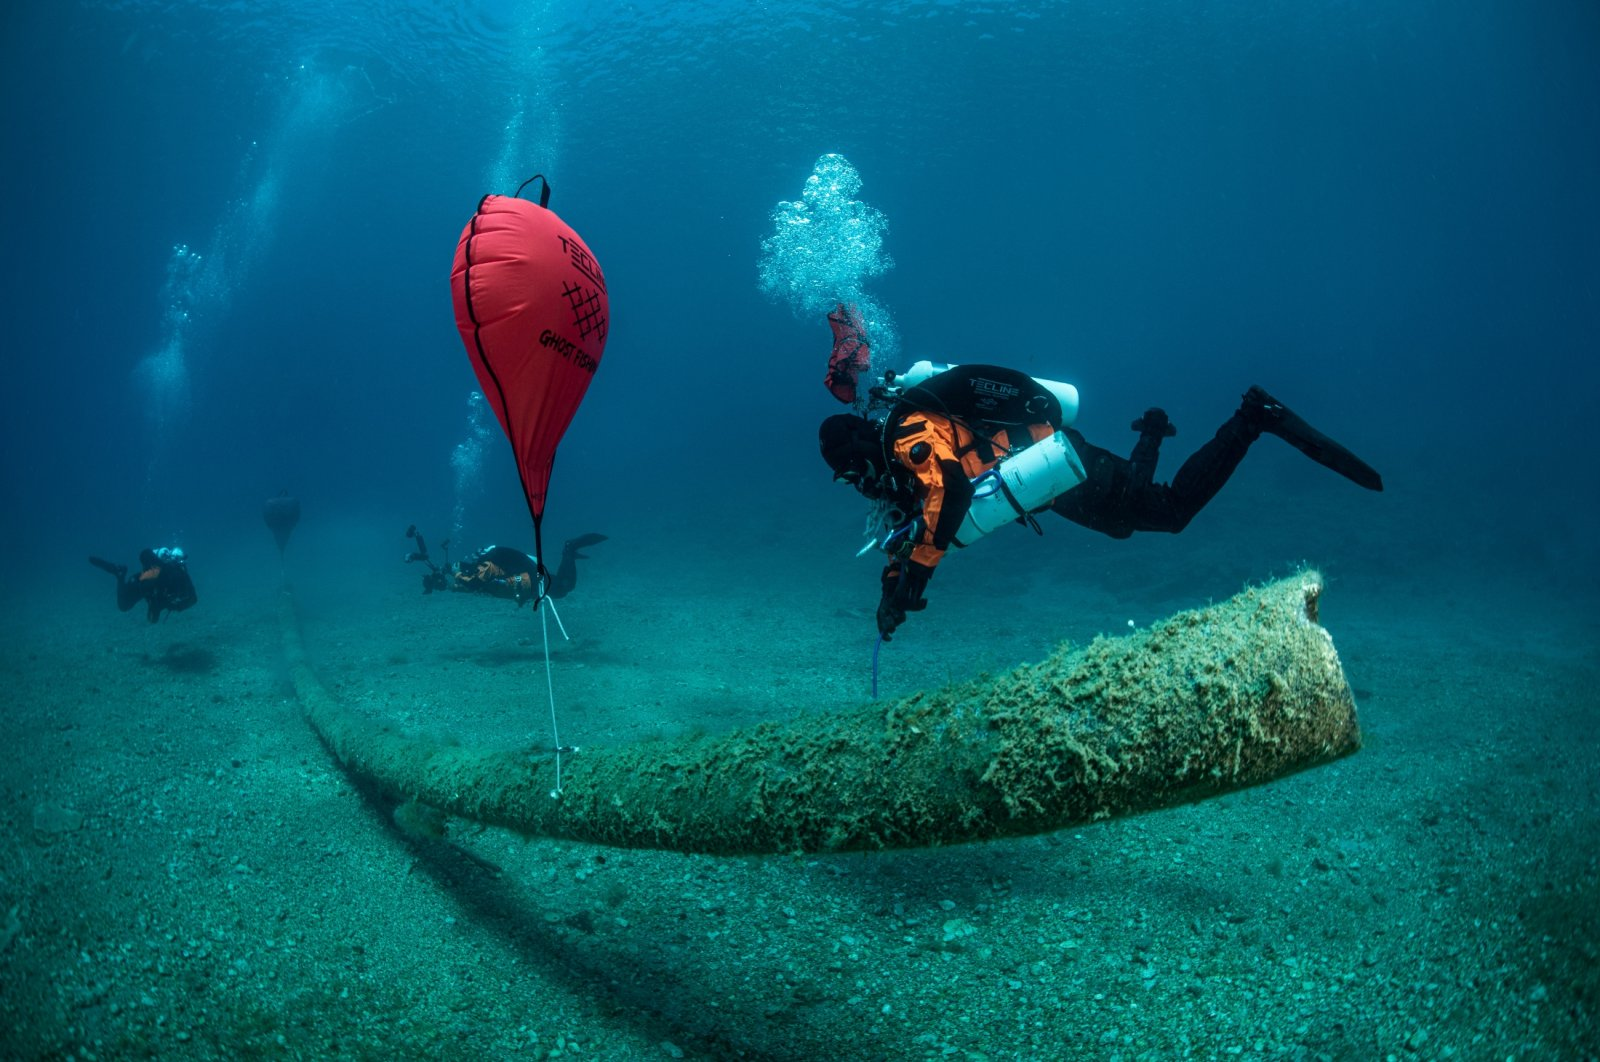 A diver inflates a lifting bag attached to the remains of a fish farm on the seabed, near the island of Ithaca, Greece, June 10, 2021. (Ghost Diving via Reuters)